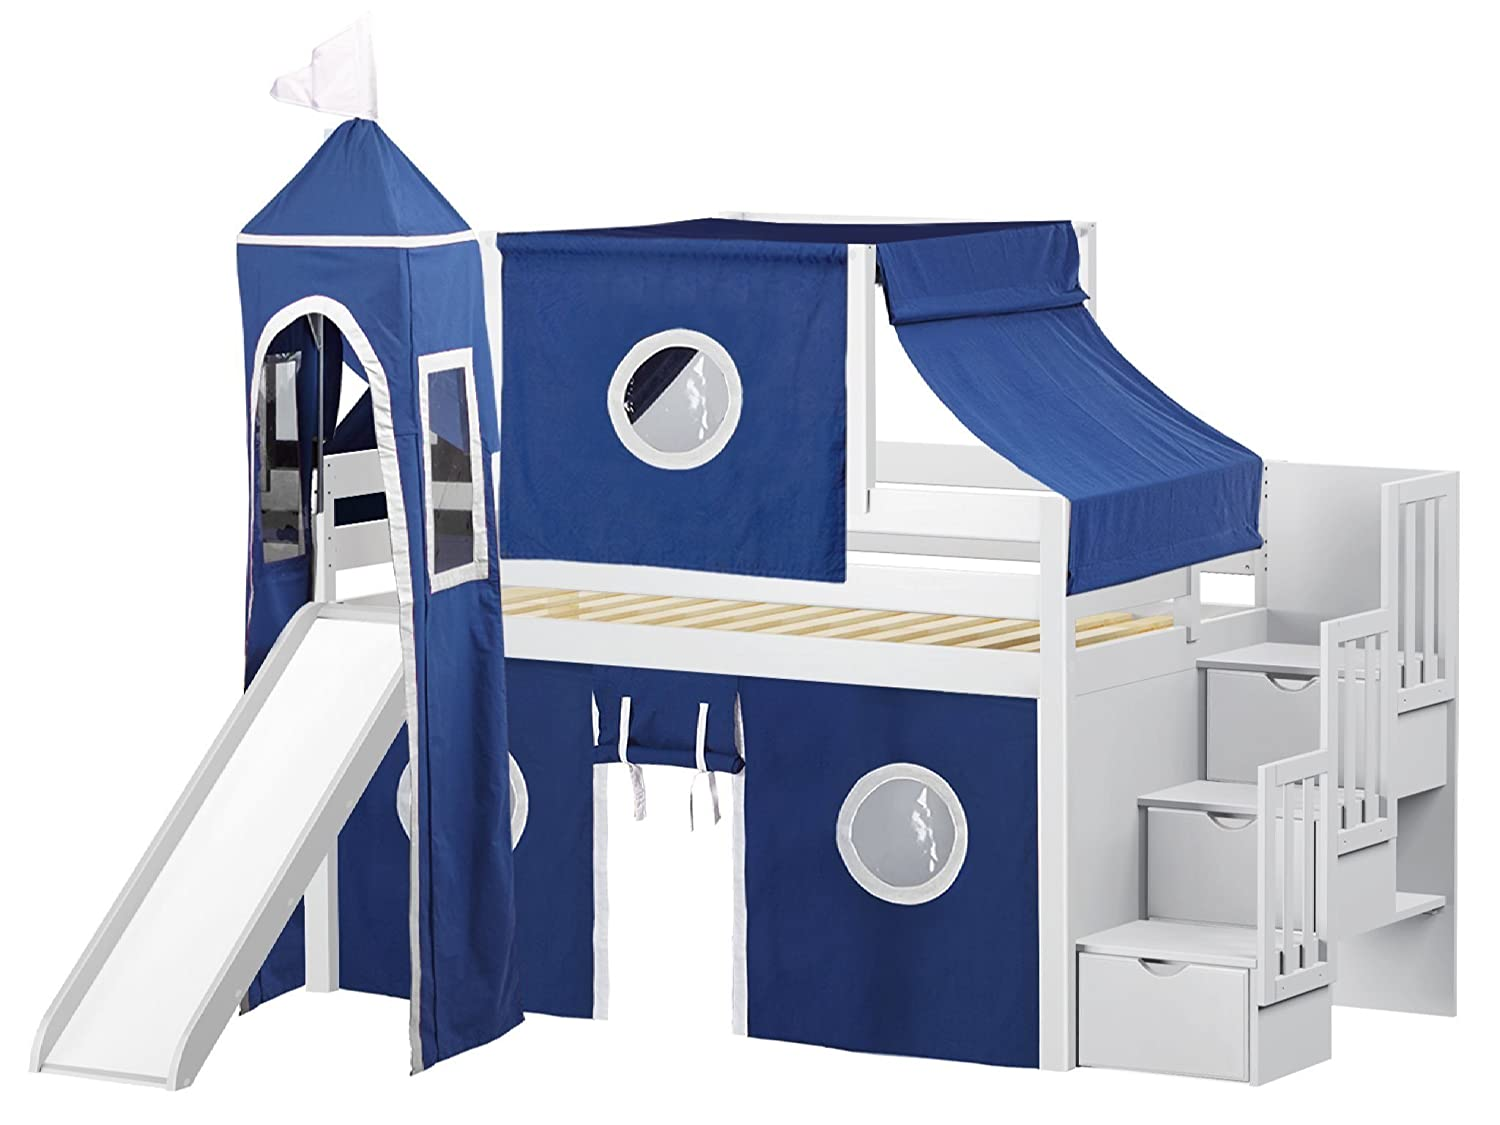 JACKPOT! Castle Low Stairway Slide Blue and White Tent and Tower Loft Bed, Twin